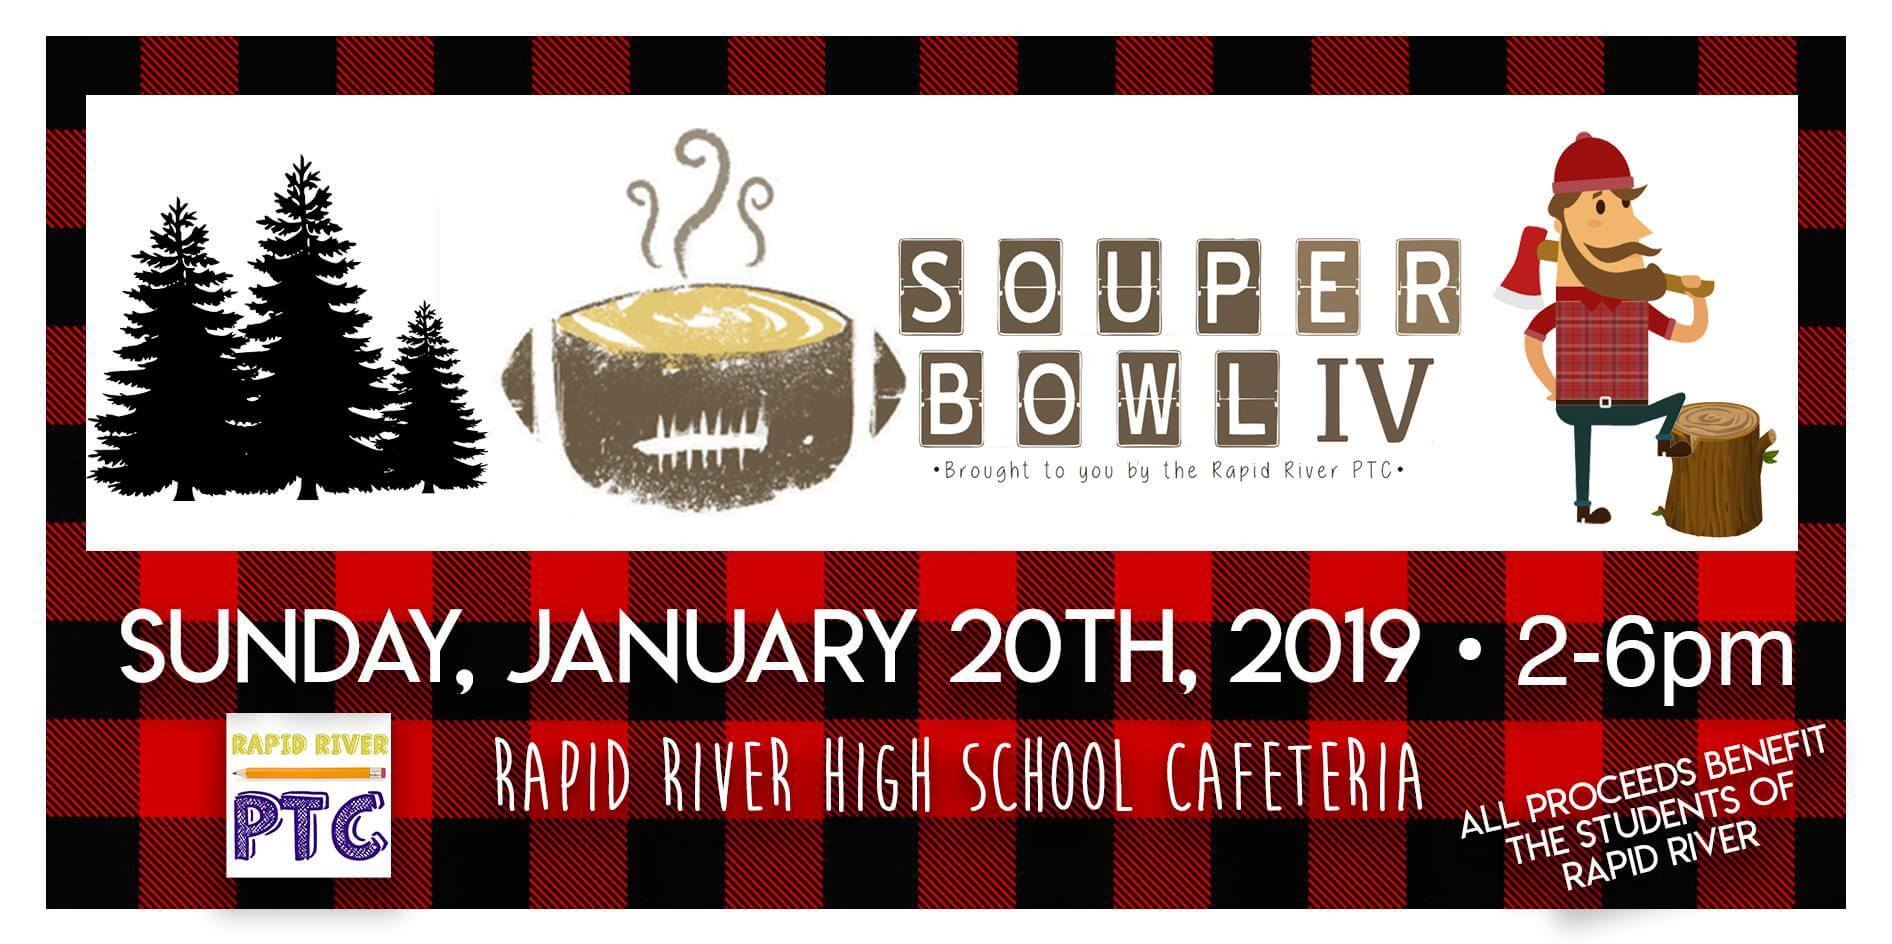 Soup-er Bowl IV, brought to you by the Rapid River PTC. Sunday, January 20th, 2019, 2-6 pm. Rapid River High School Caftereria. All proceeds benefit the students of Rapid River.